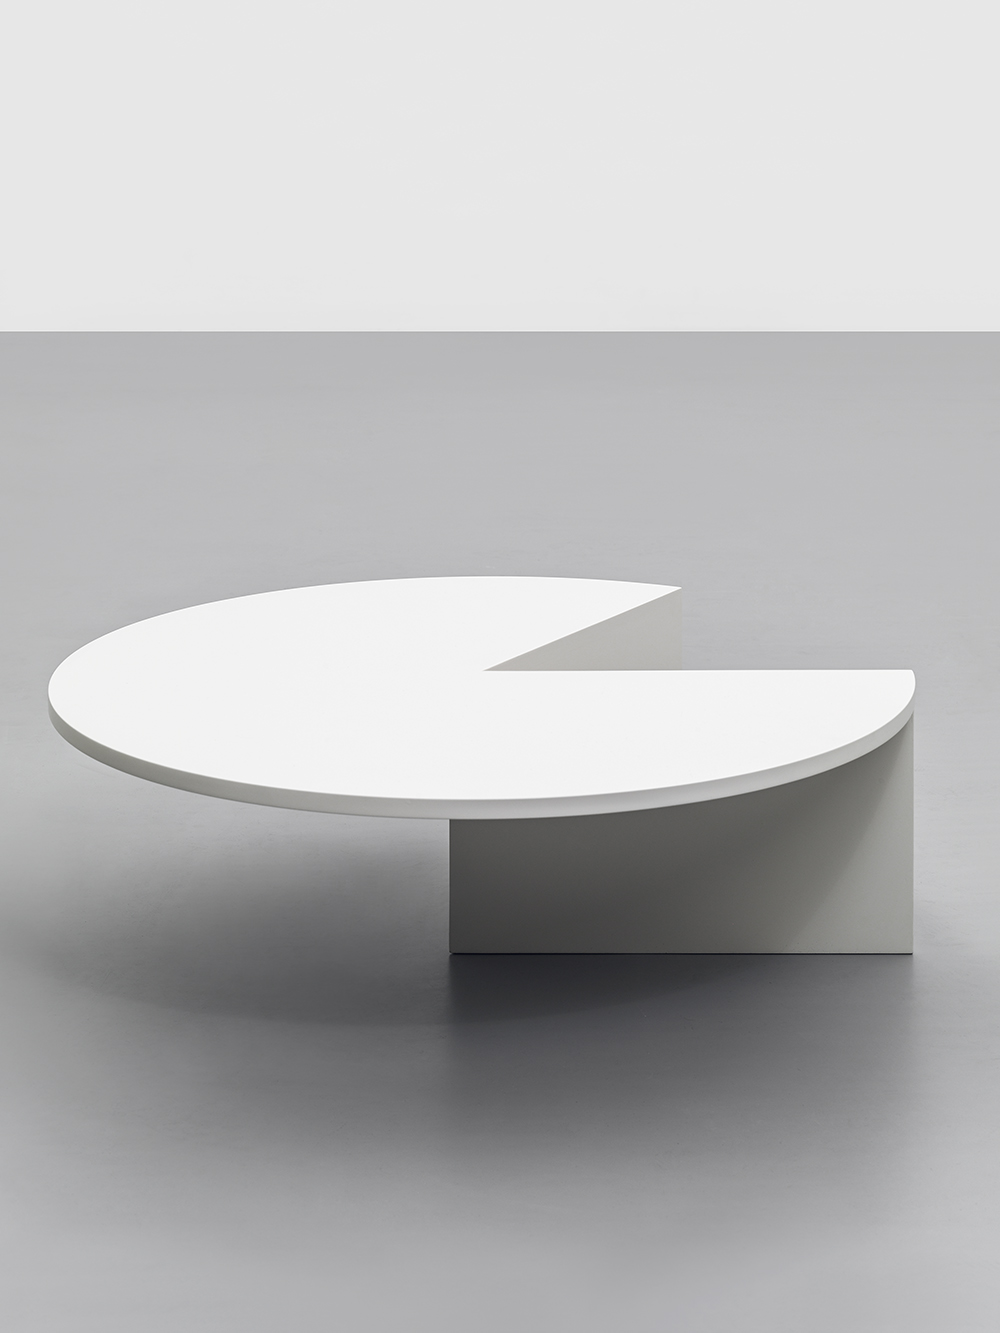 pac_tables_klemens_schillinger_03